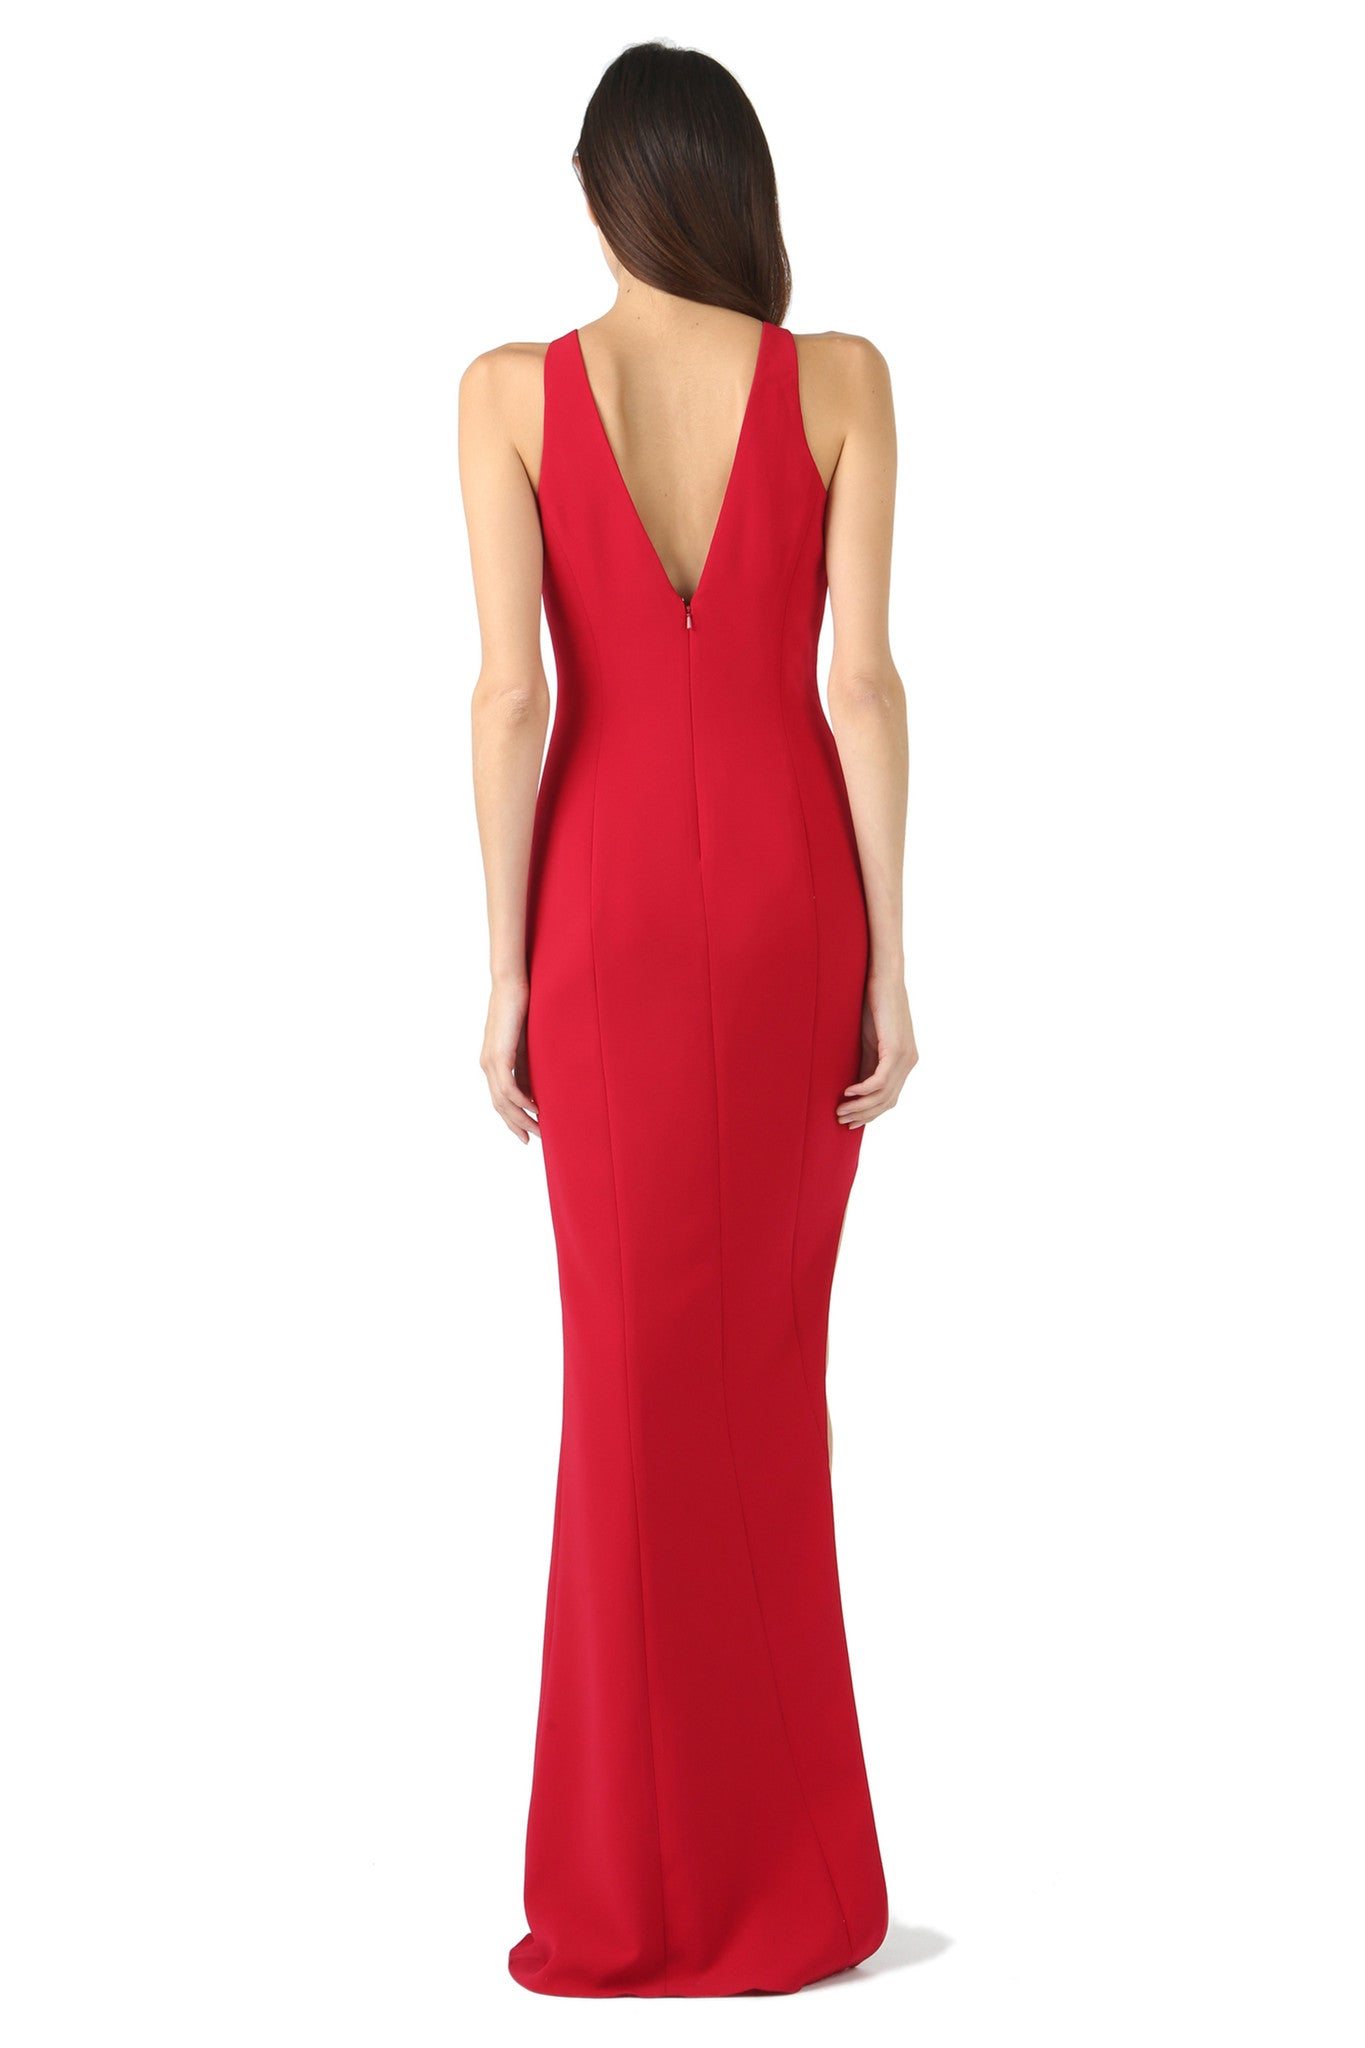 Jay Godfrey Red Asymmetrical Slit Gown - Back View